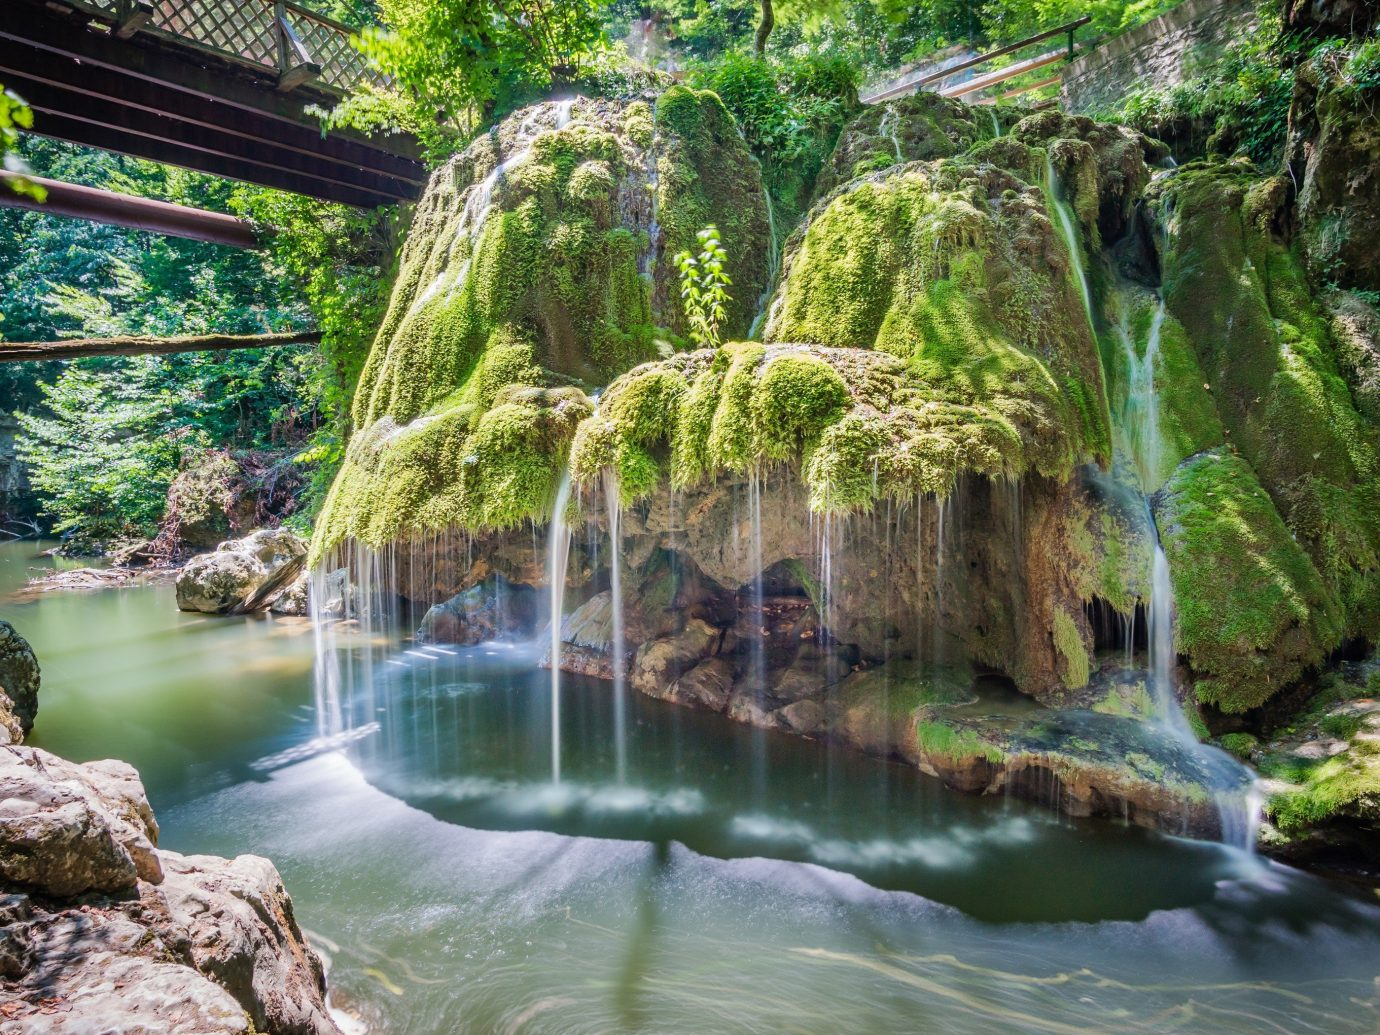 Trip Ideas tree outdoor water Nature Waterfall rock vegetation body of water watercourse botany water feature rainforest River Jungle Forest stream park flower